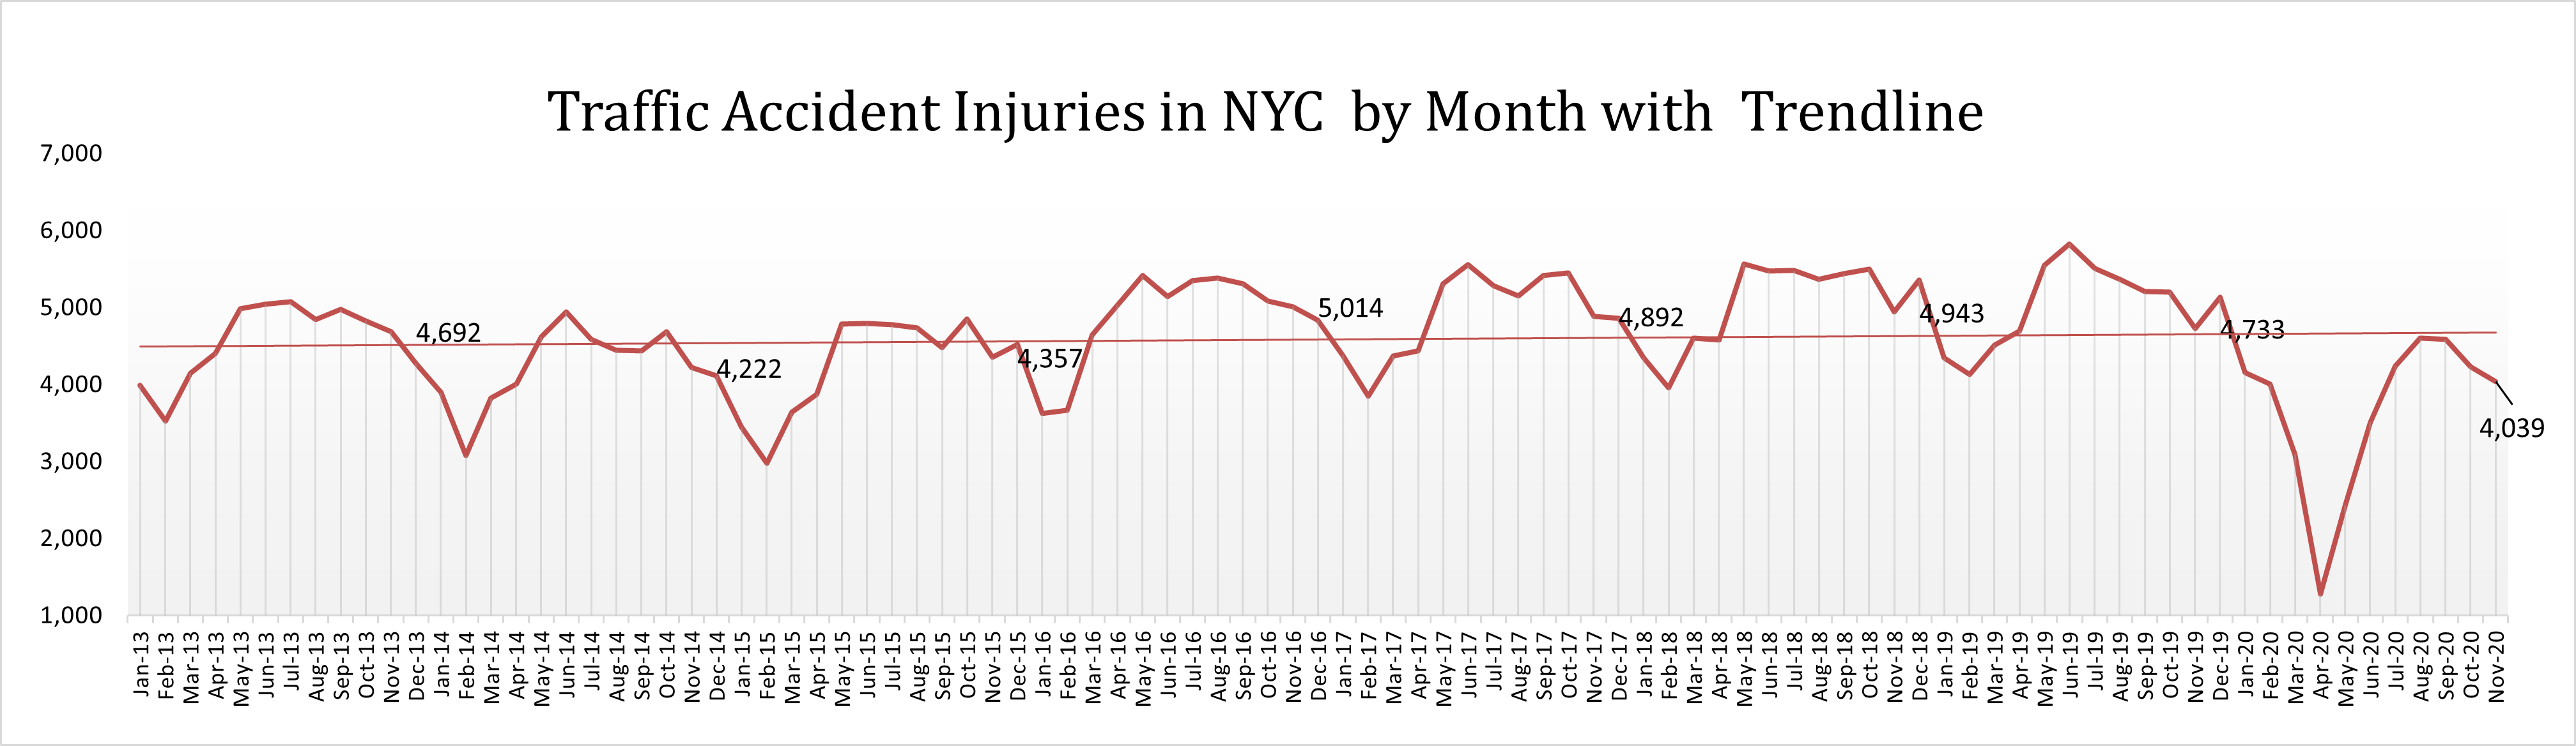 Car accident injuries in New York in November with trendline